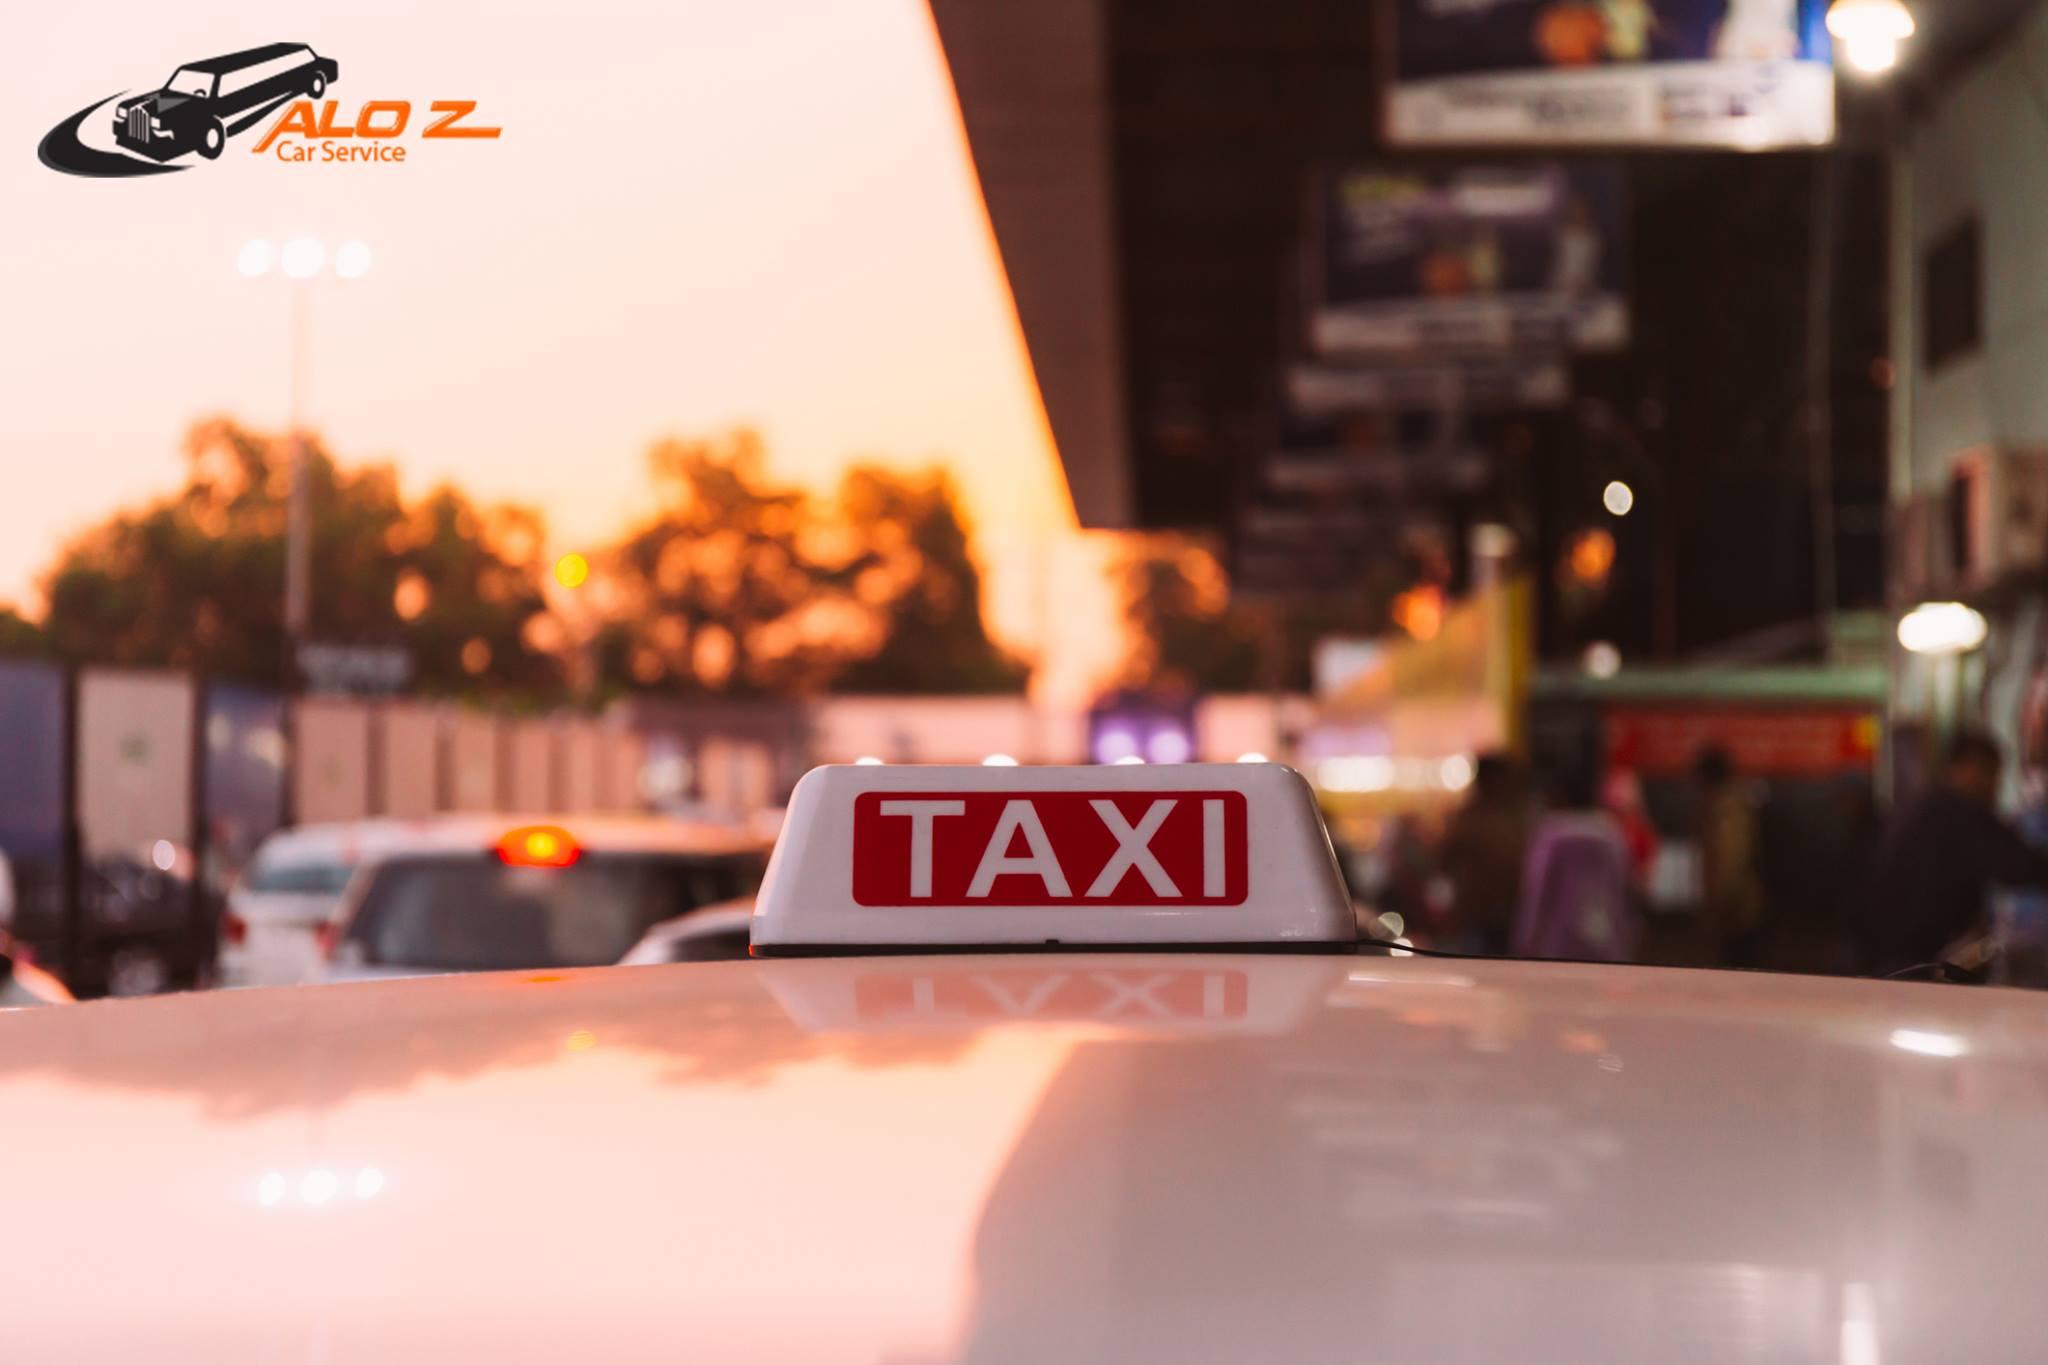 Get Affordable Taxi Limo Service 732-742-2252 New Jersey